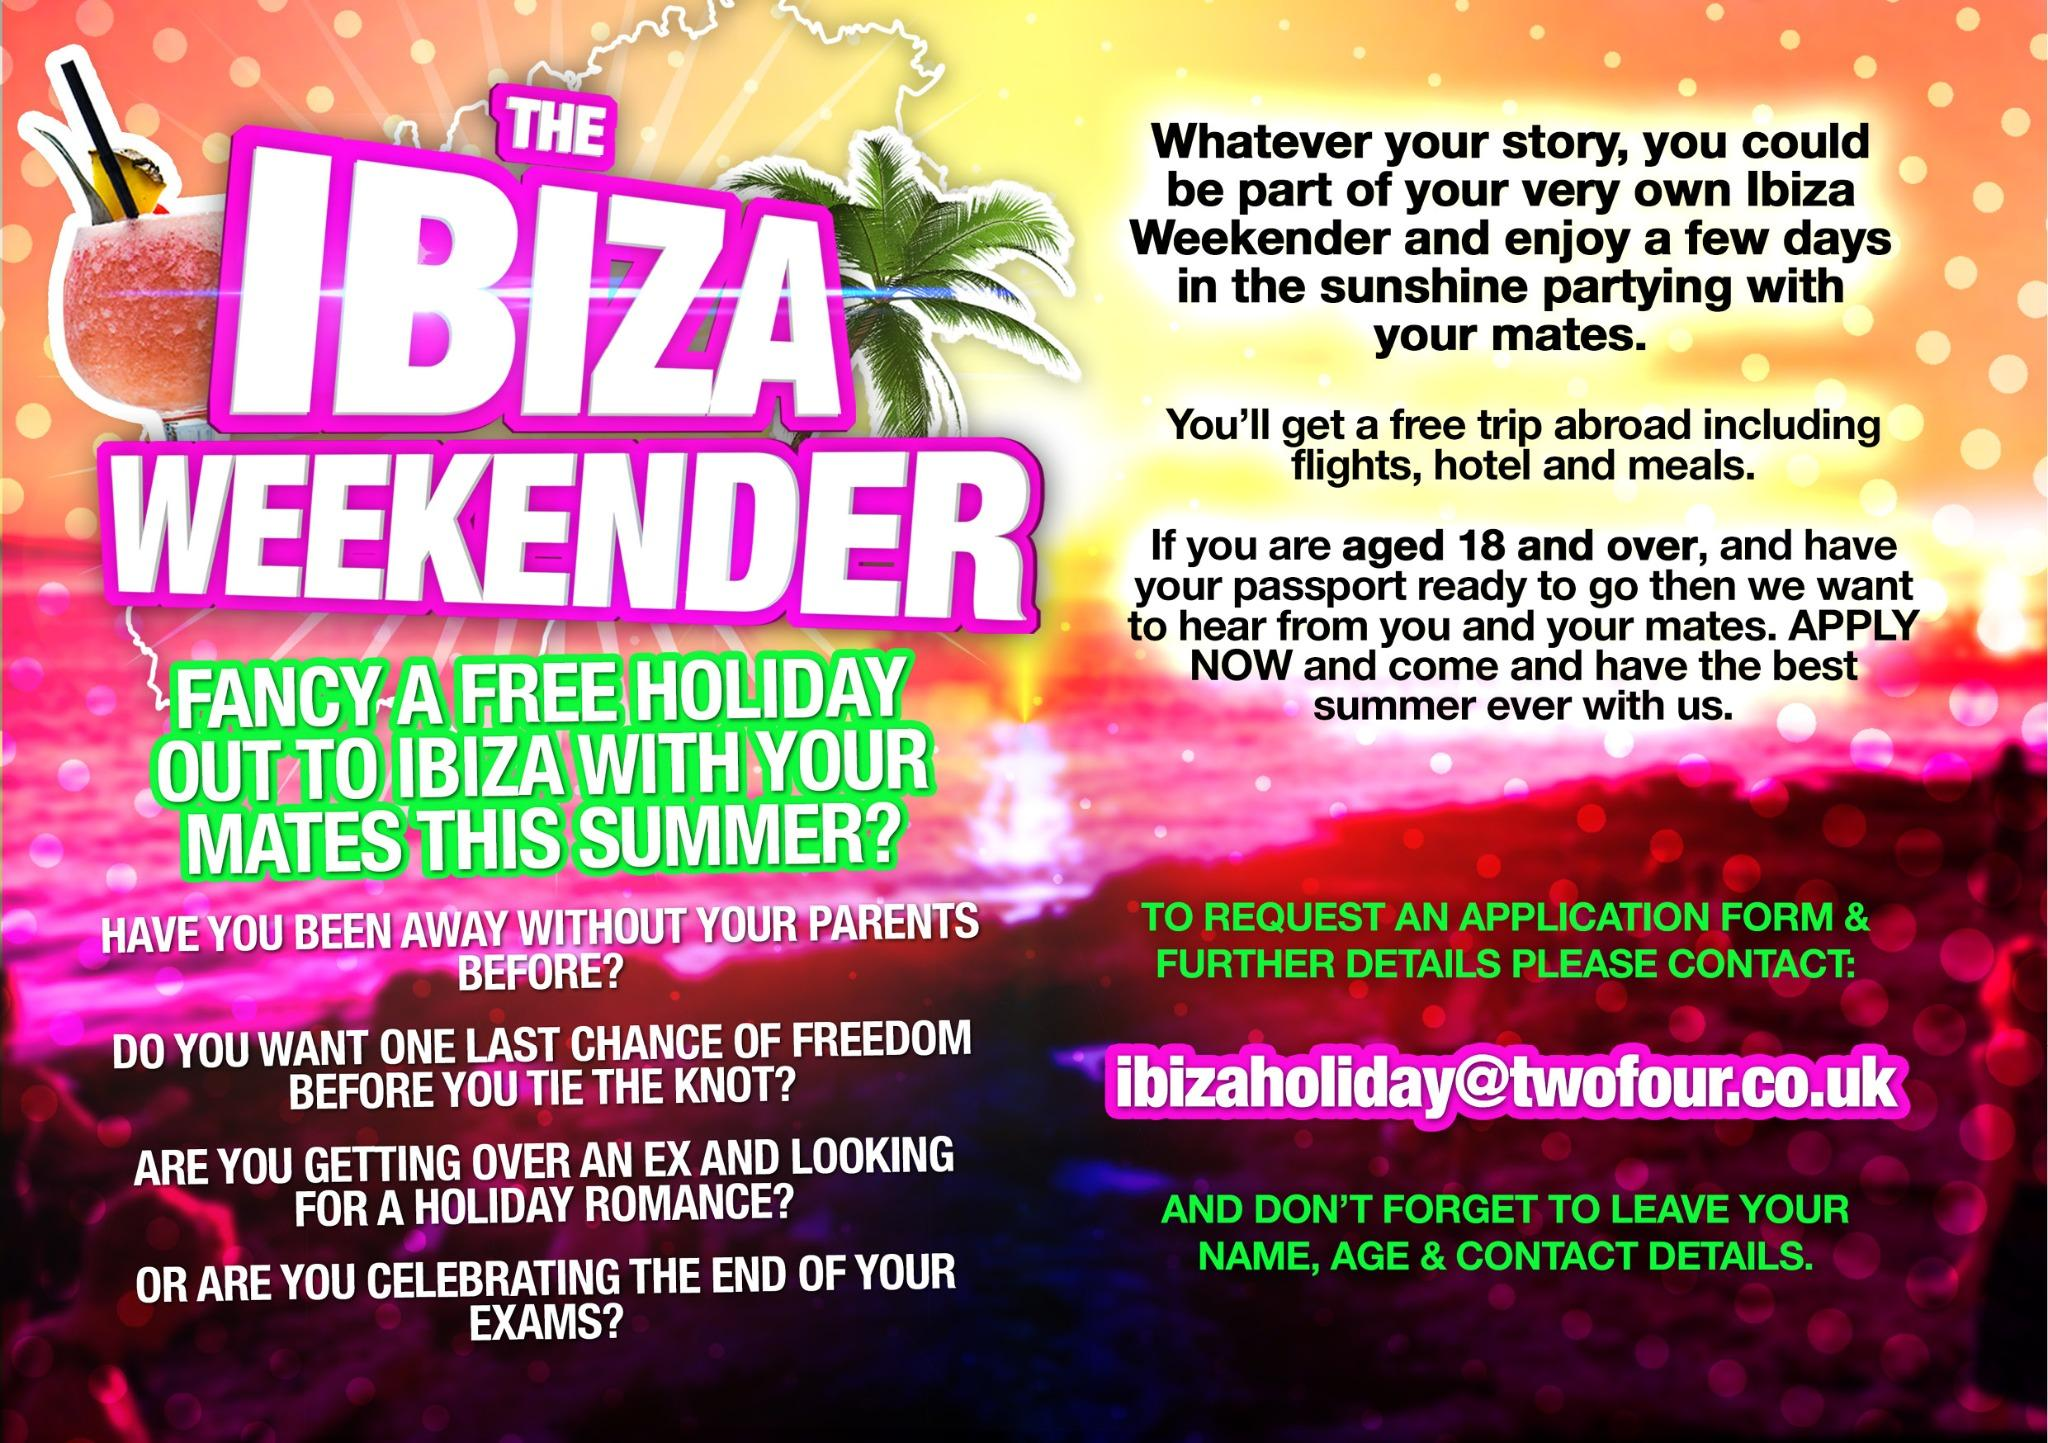 RT @IbizaWeekendTV: @nickymcdonald1 Pls RT: Need a hol?Fancy a trip to Ibiza!?Let the Ibiza Weekender know! http://t.co/vQXGQgvJvT